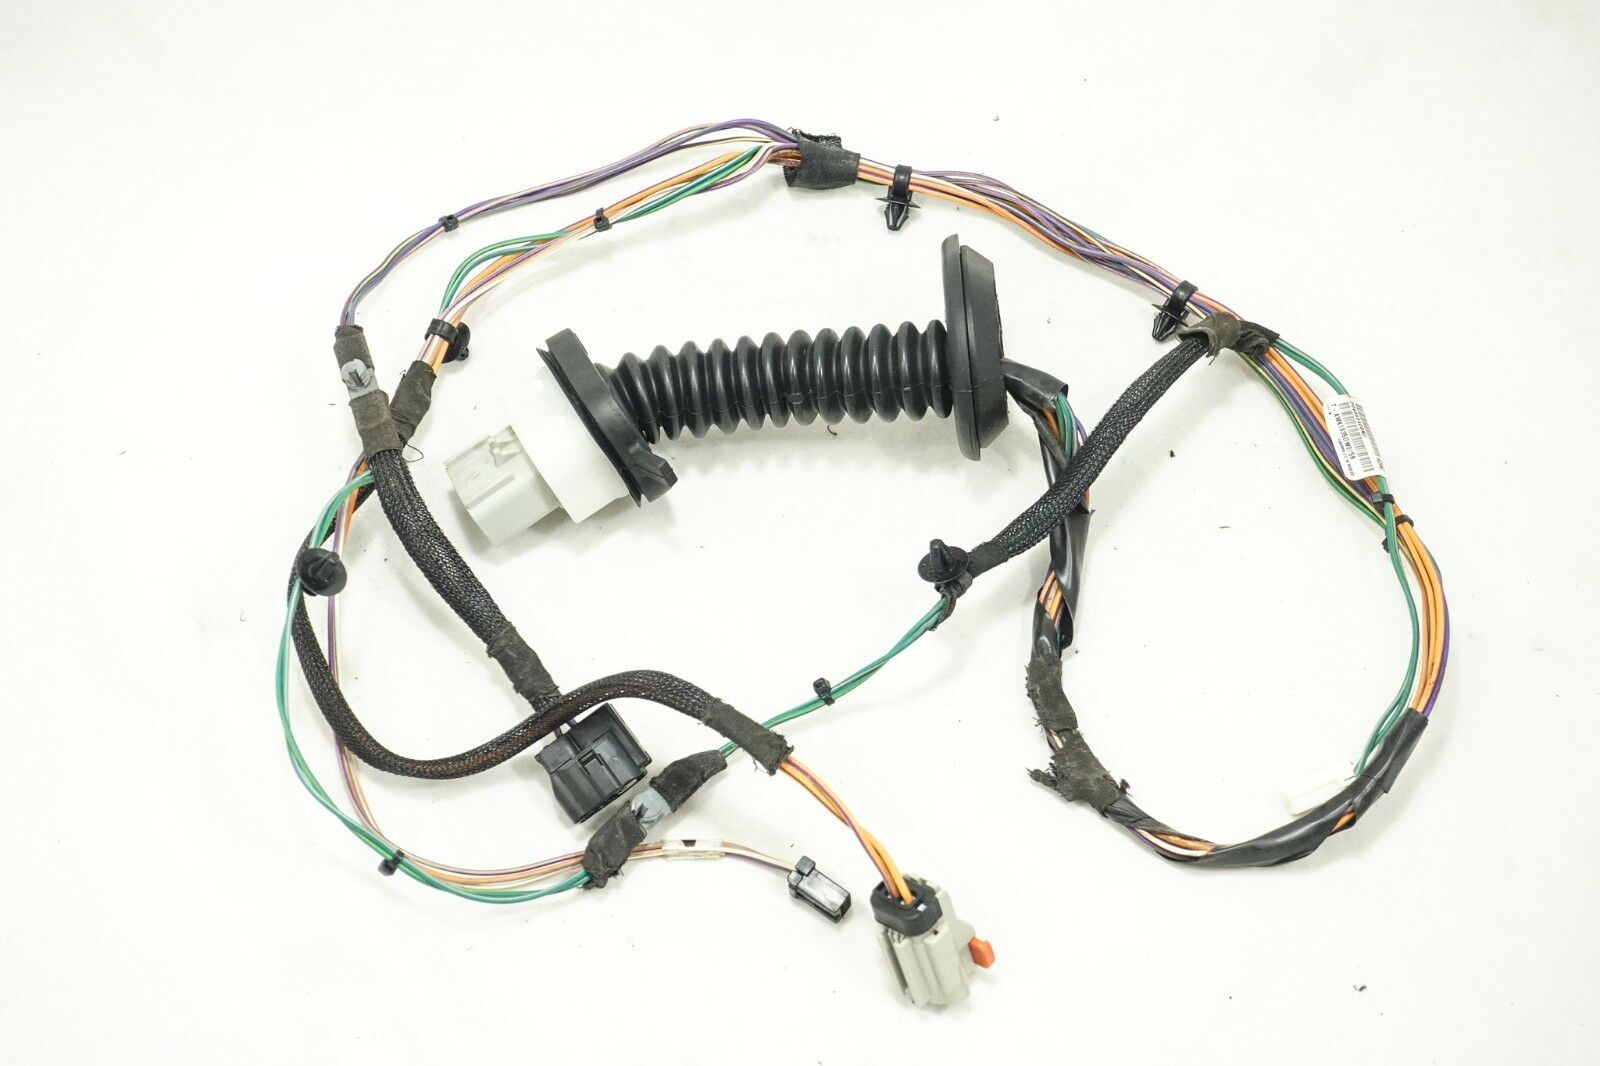 Used 2004 Chrysler Pacifica Interior Door Panels And Parts For Sale Wiring Harness 2006 Rear 04869409ae 04869409ad